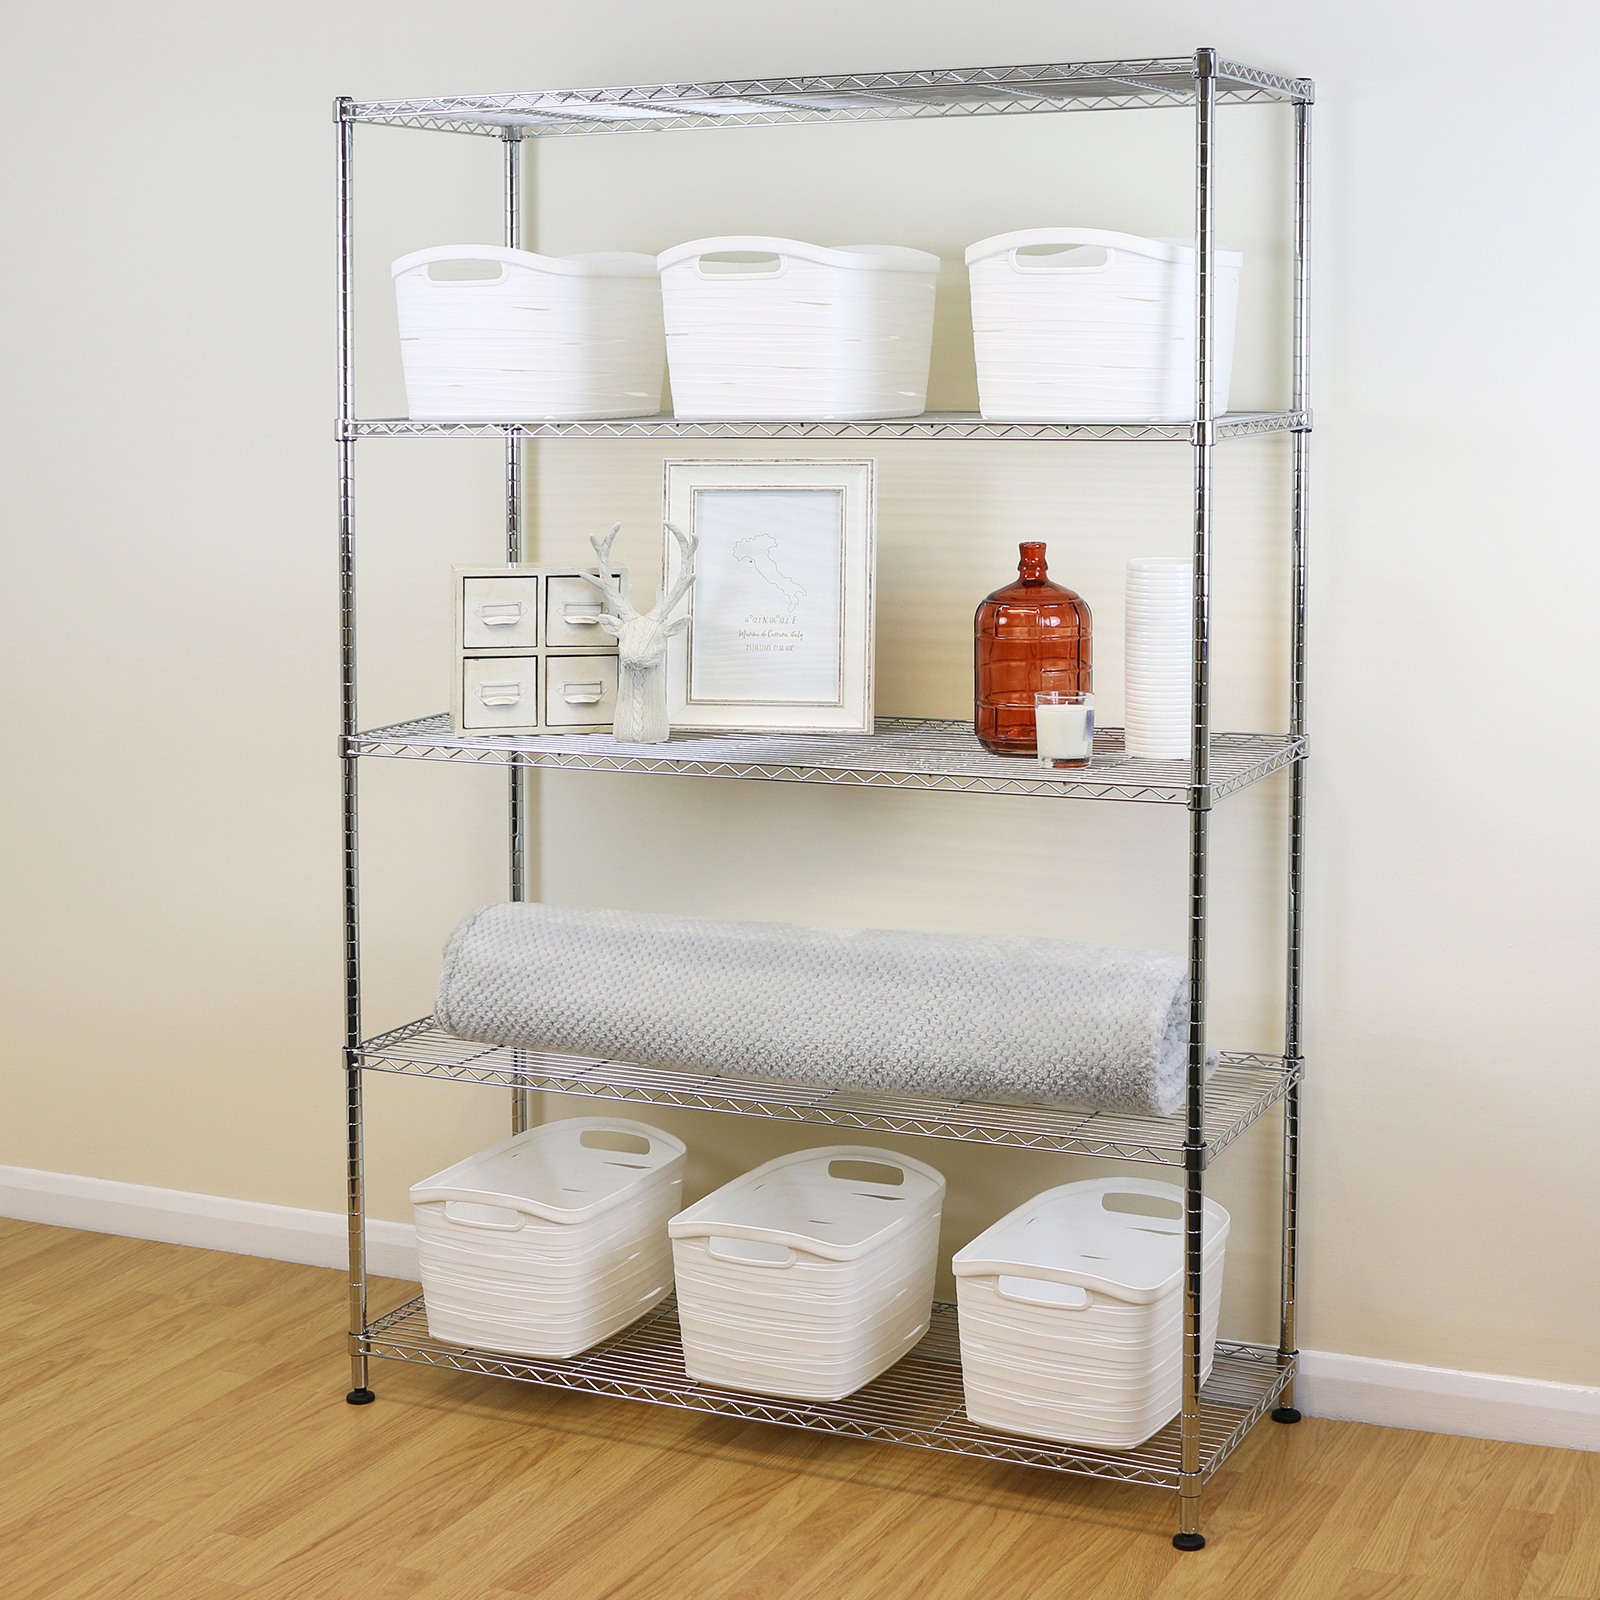 Kitchen Shelf Metal: 5 Tier Chrome Metal Storage Rack/Shelving Wire Shelf